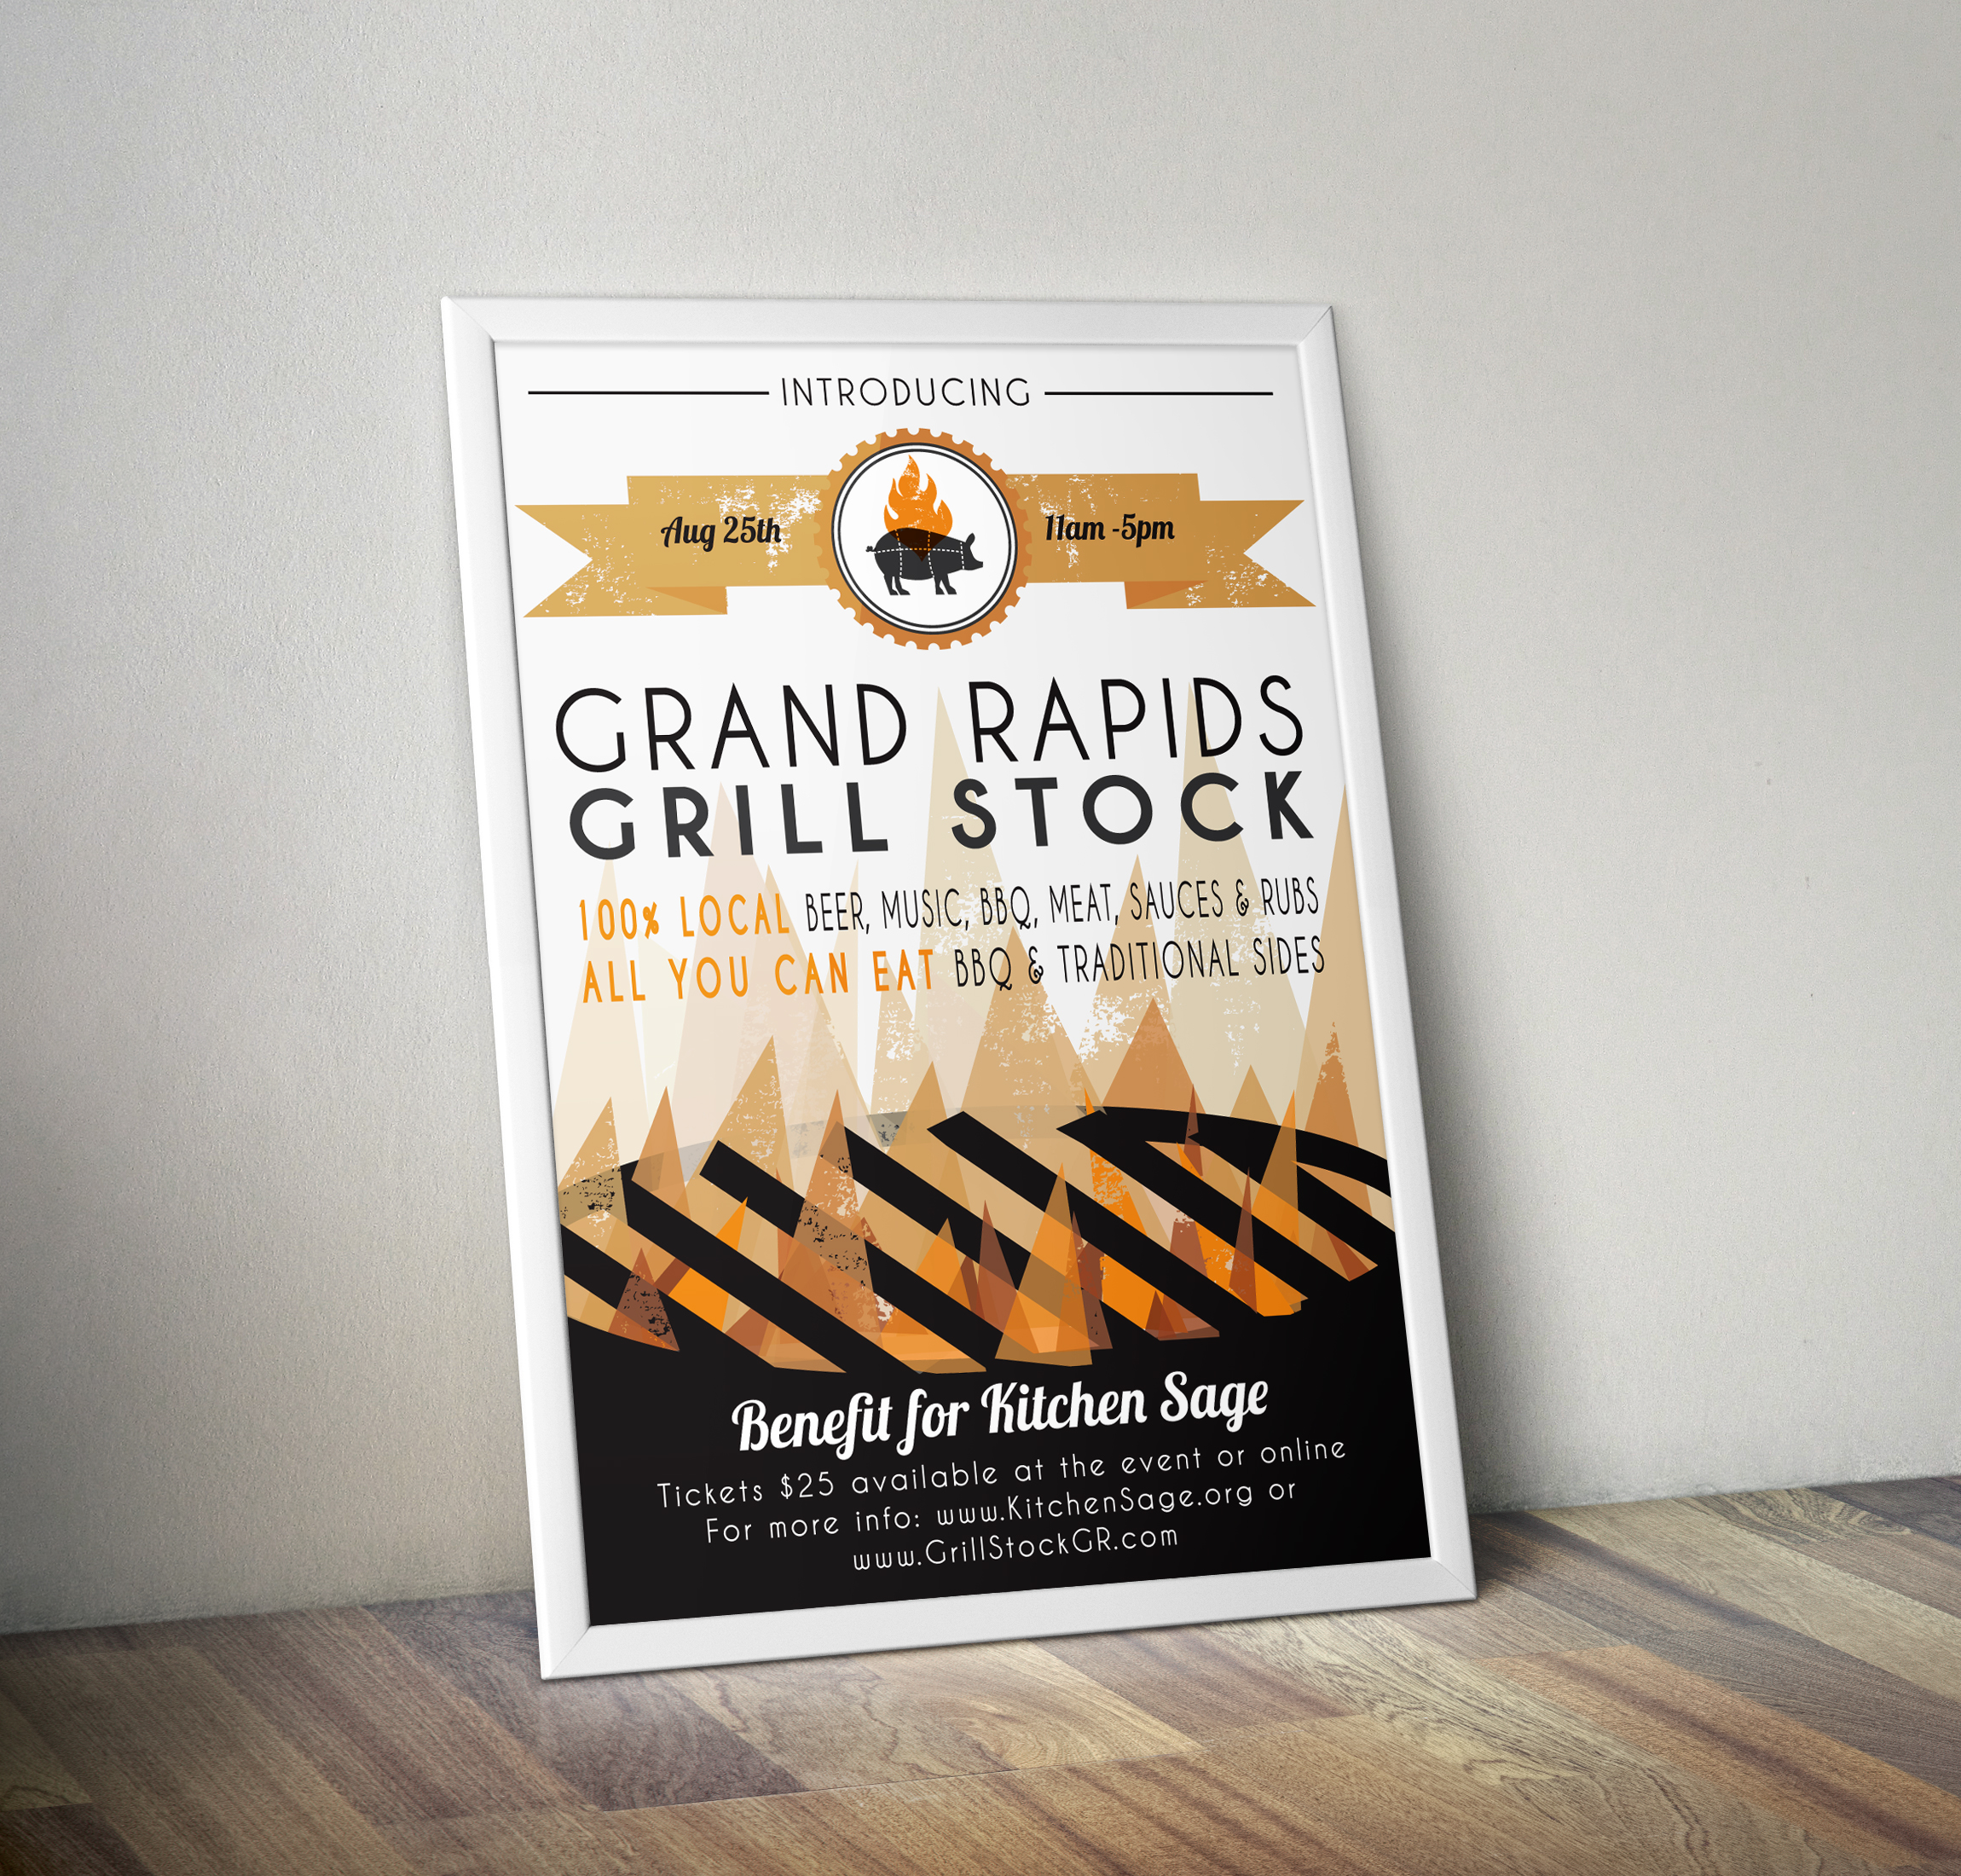 Grand Rapids first annual Grill Stock BBQ sponsored by local breweries and restaurants designed by Xoil Design